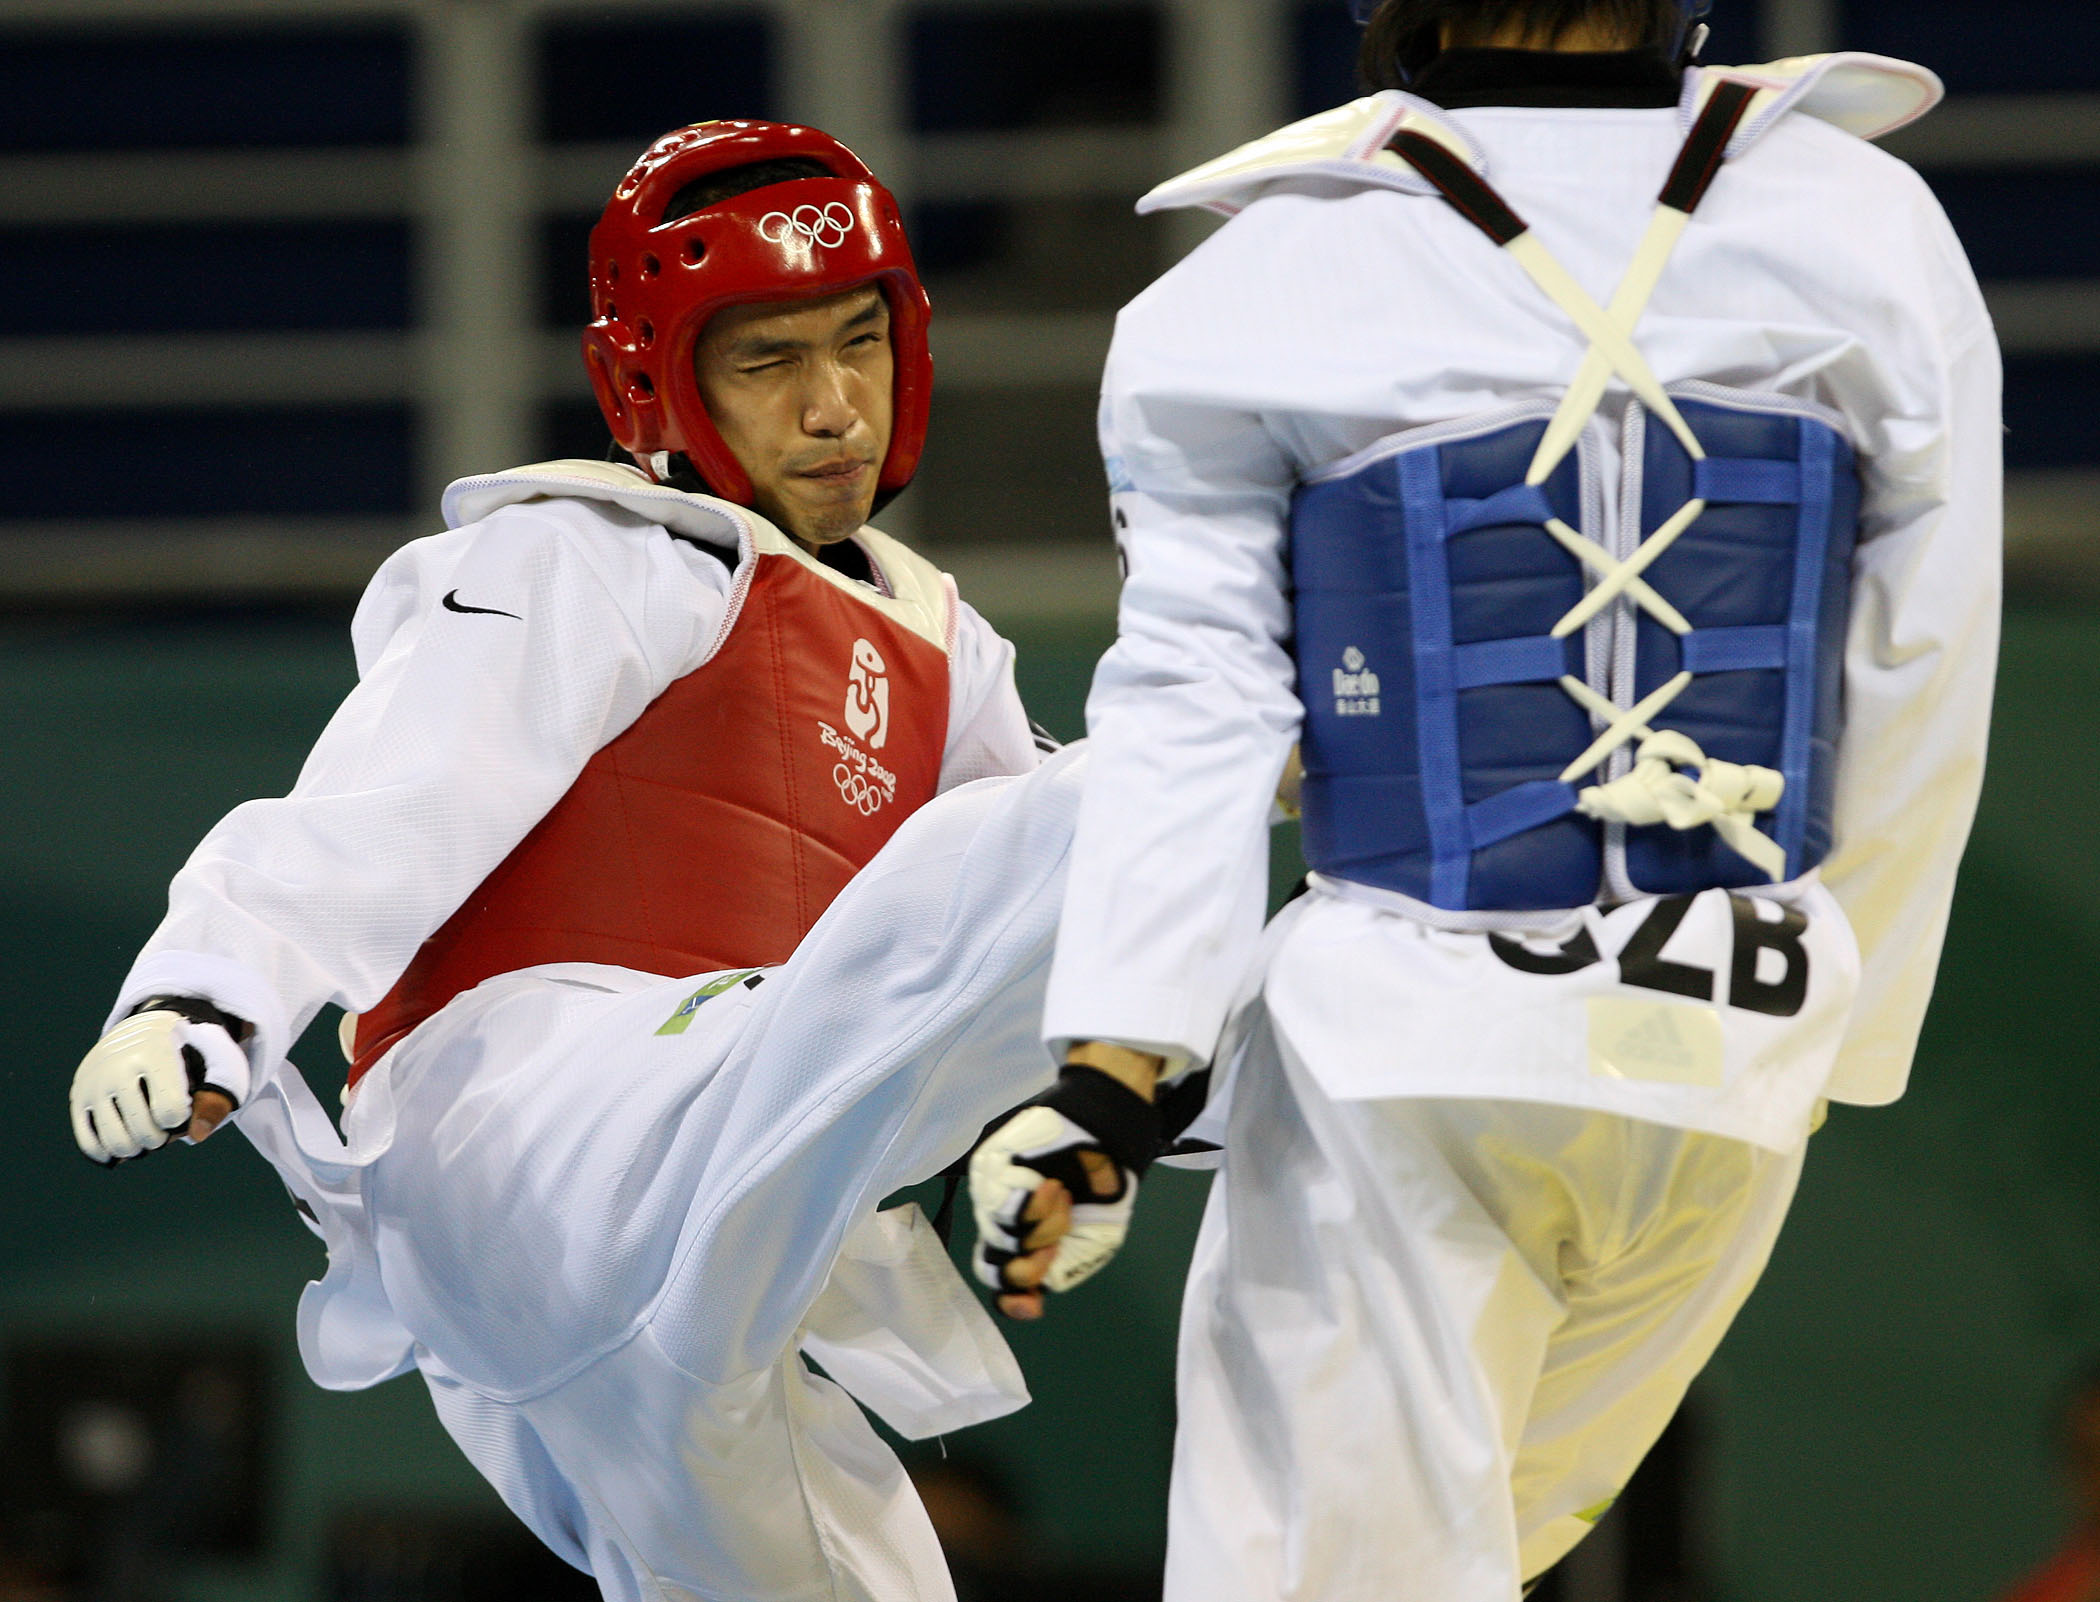 Sung Yu-chi, left, defeats his rival to win a fourth bronze for Taiwan at the 2008 Beijing Olympics.